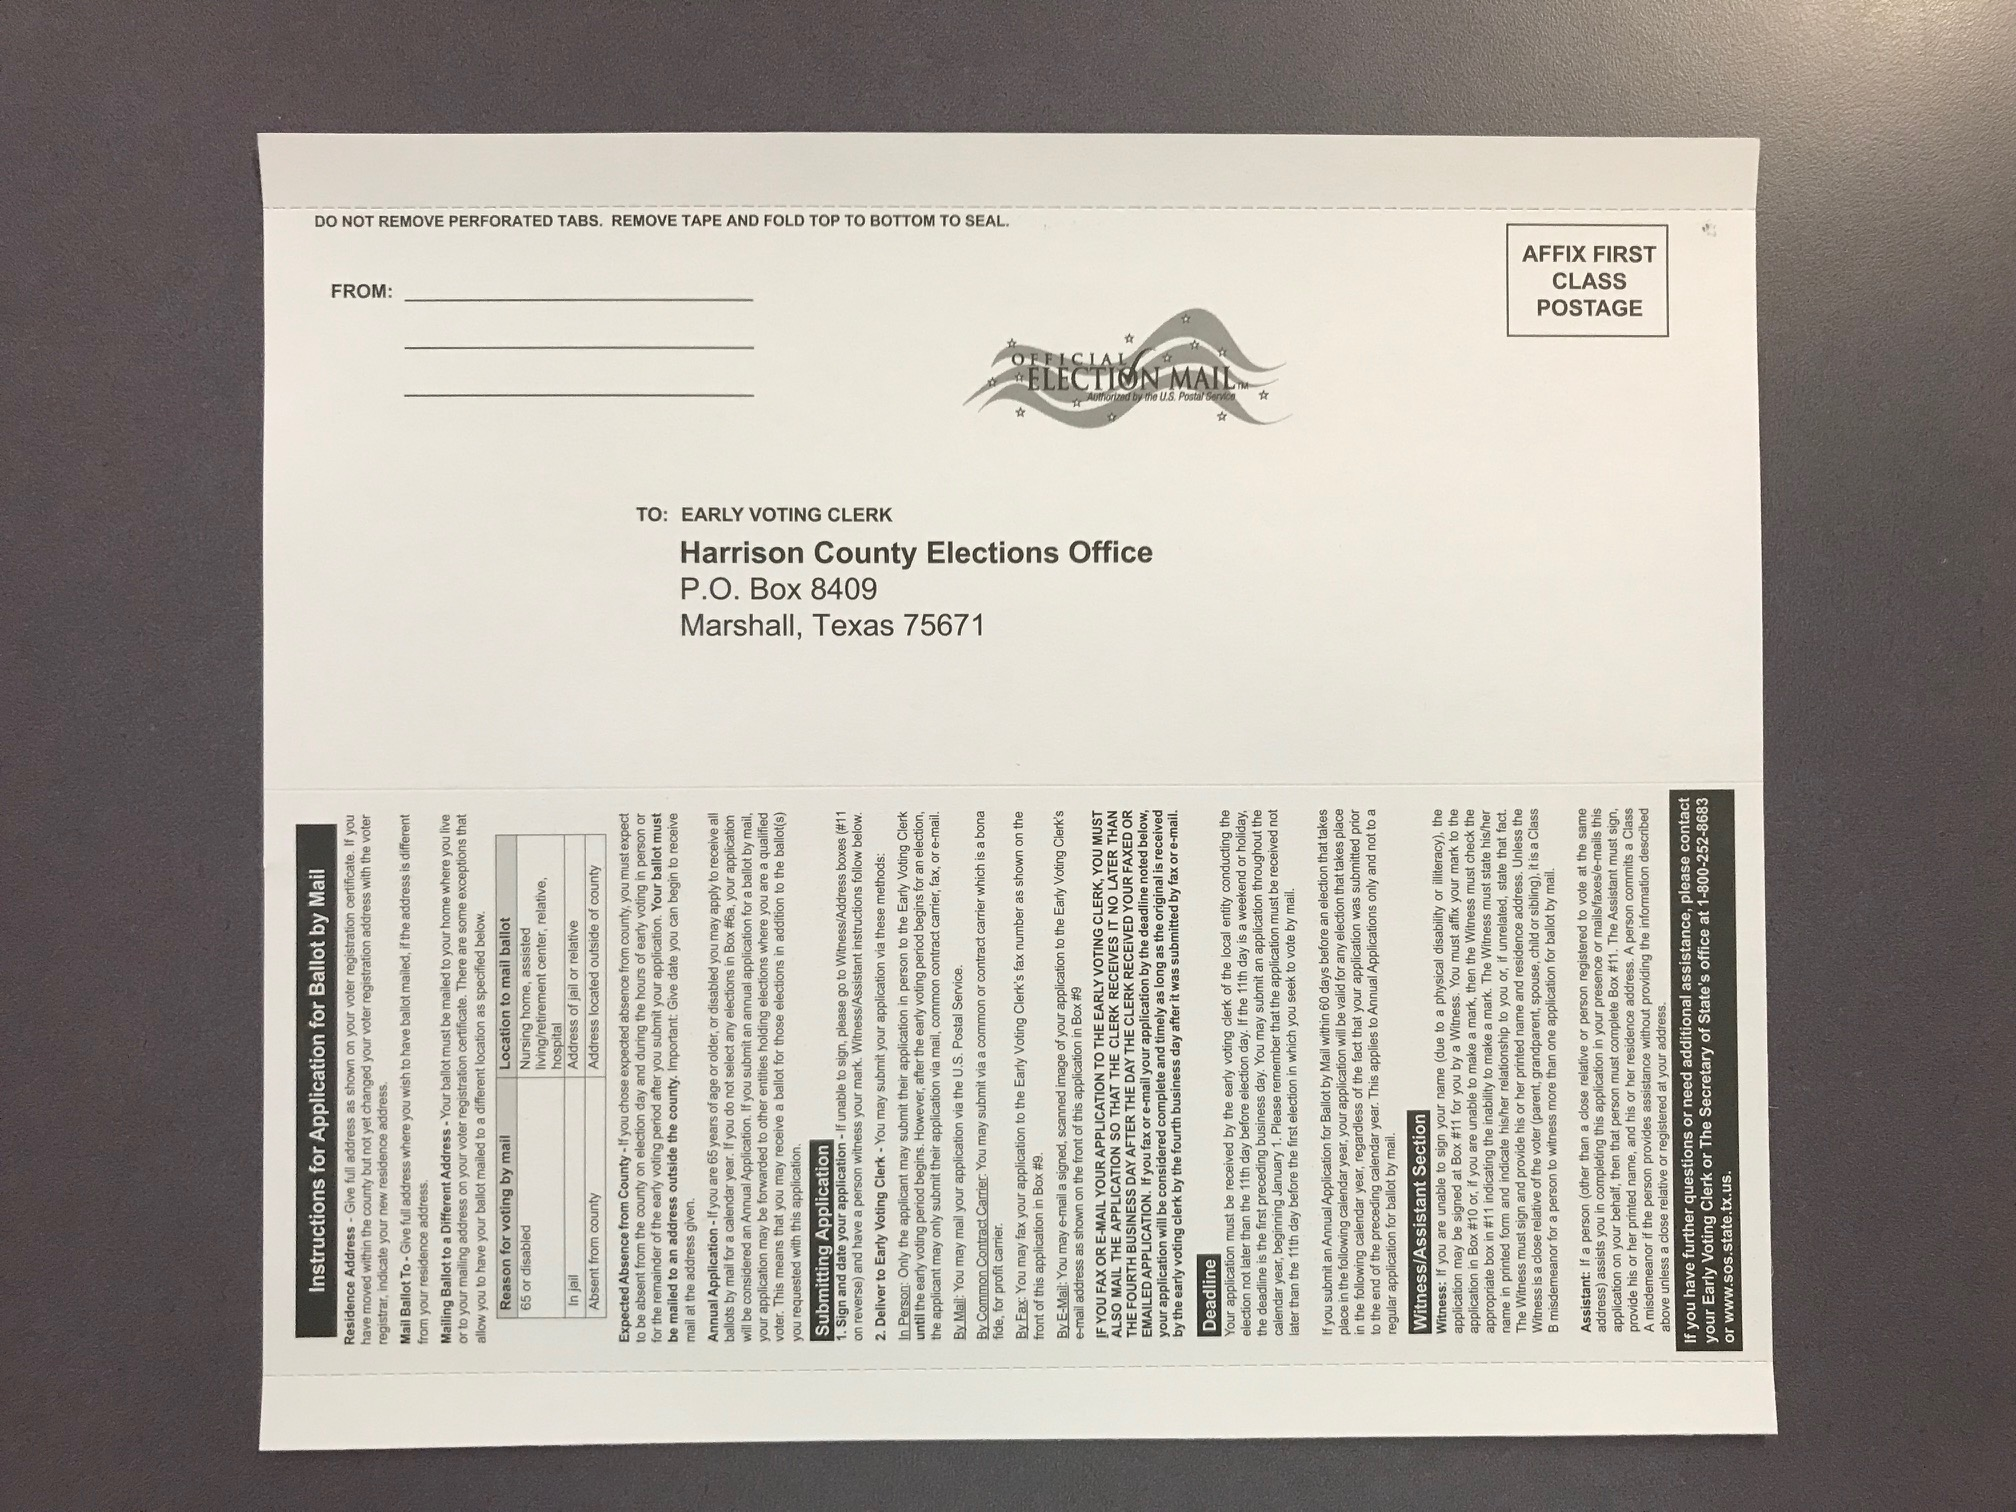 Ballot By Mail Application